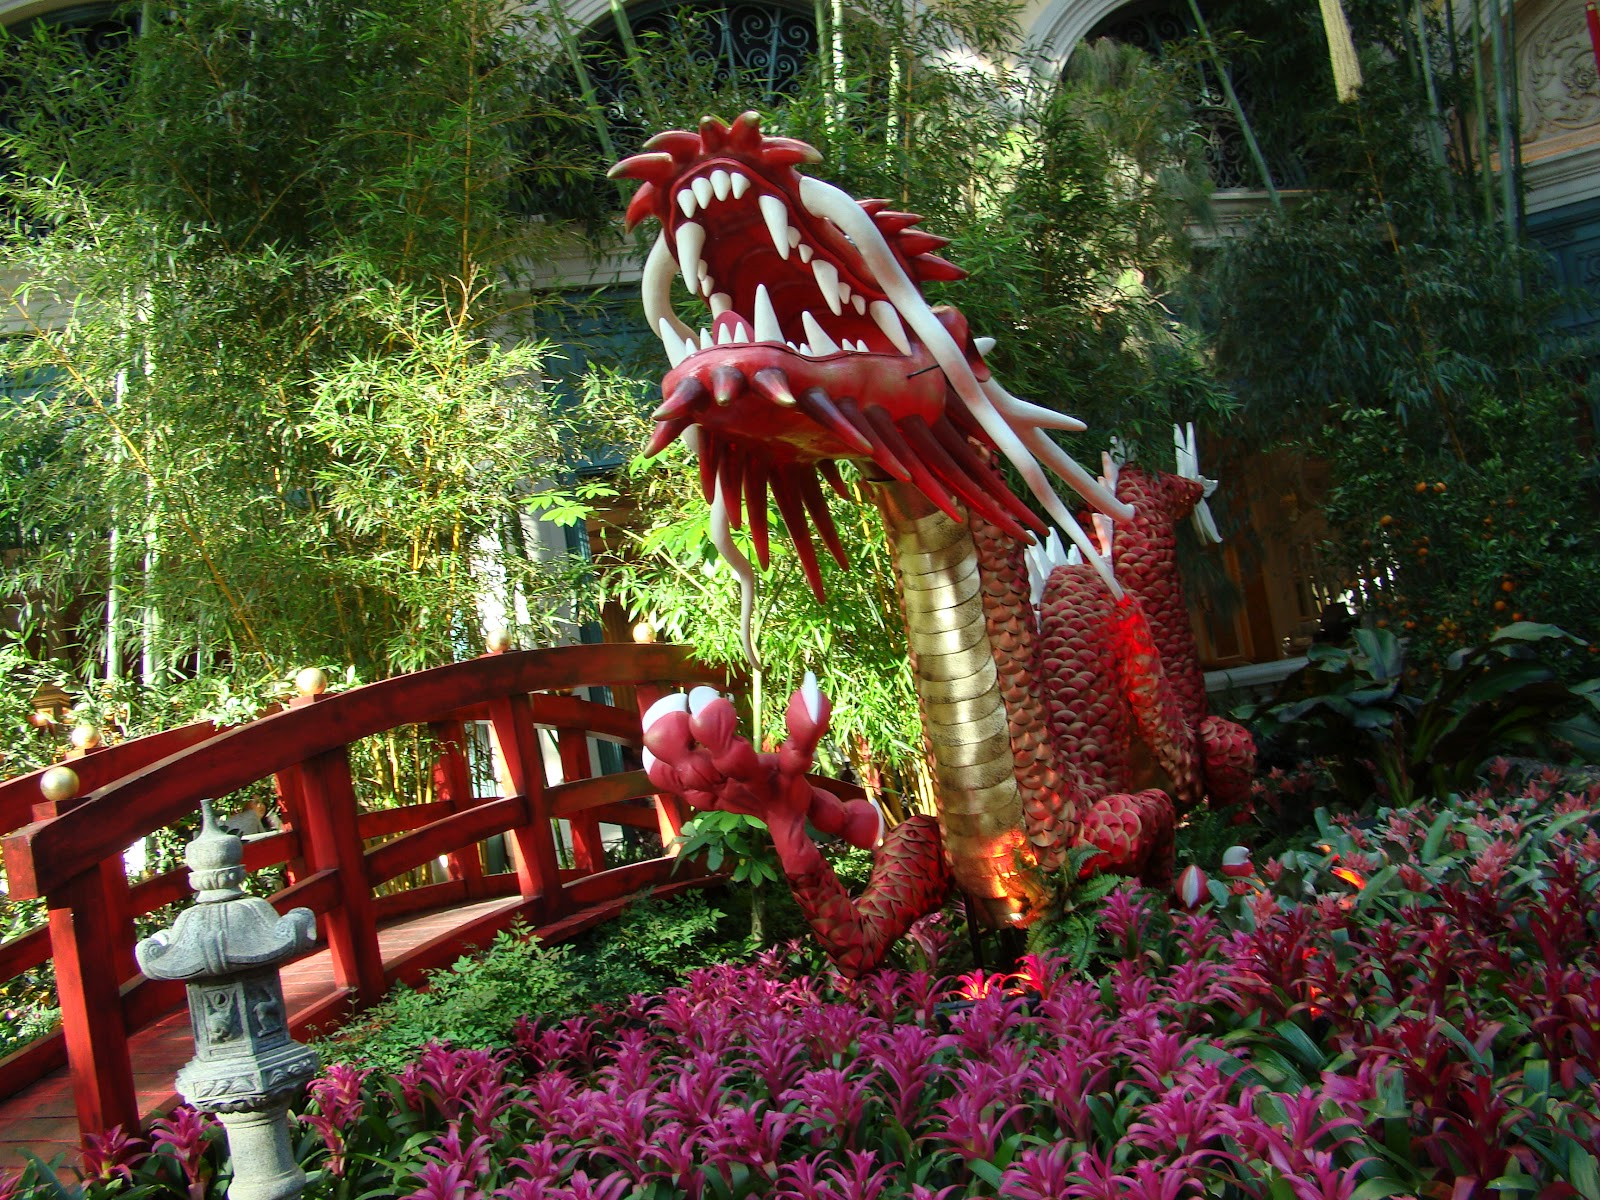 I Love Checking The Botanical Garden To See What They Have To See Each Time  I Visit. Right Now, It Is The Year Of The Dragon But Will Change March 12,  2012.